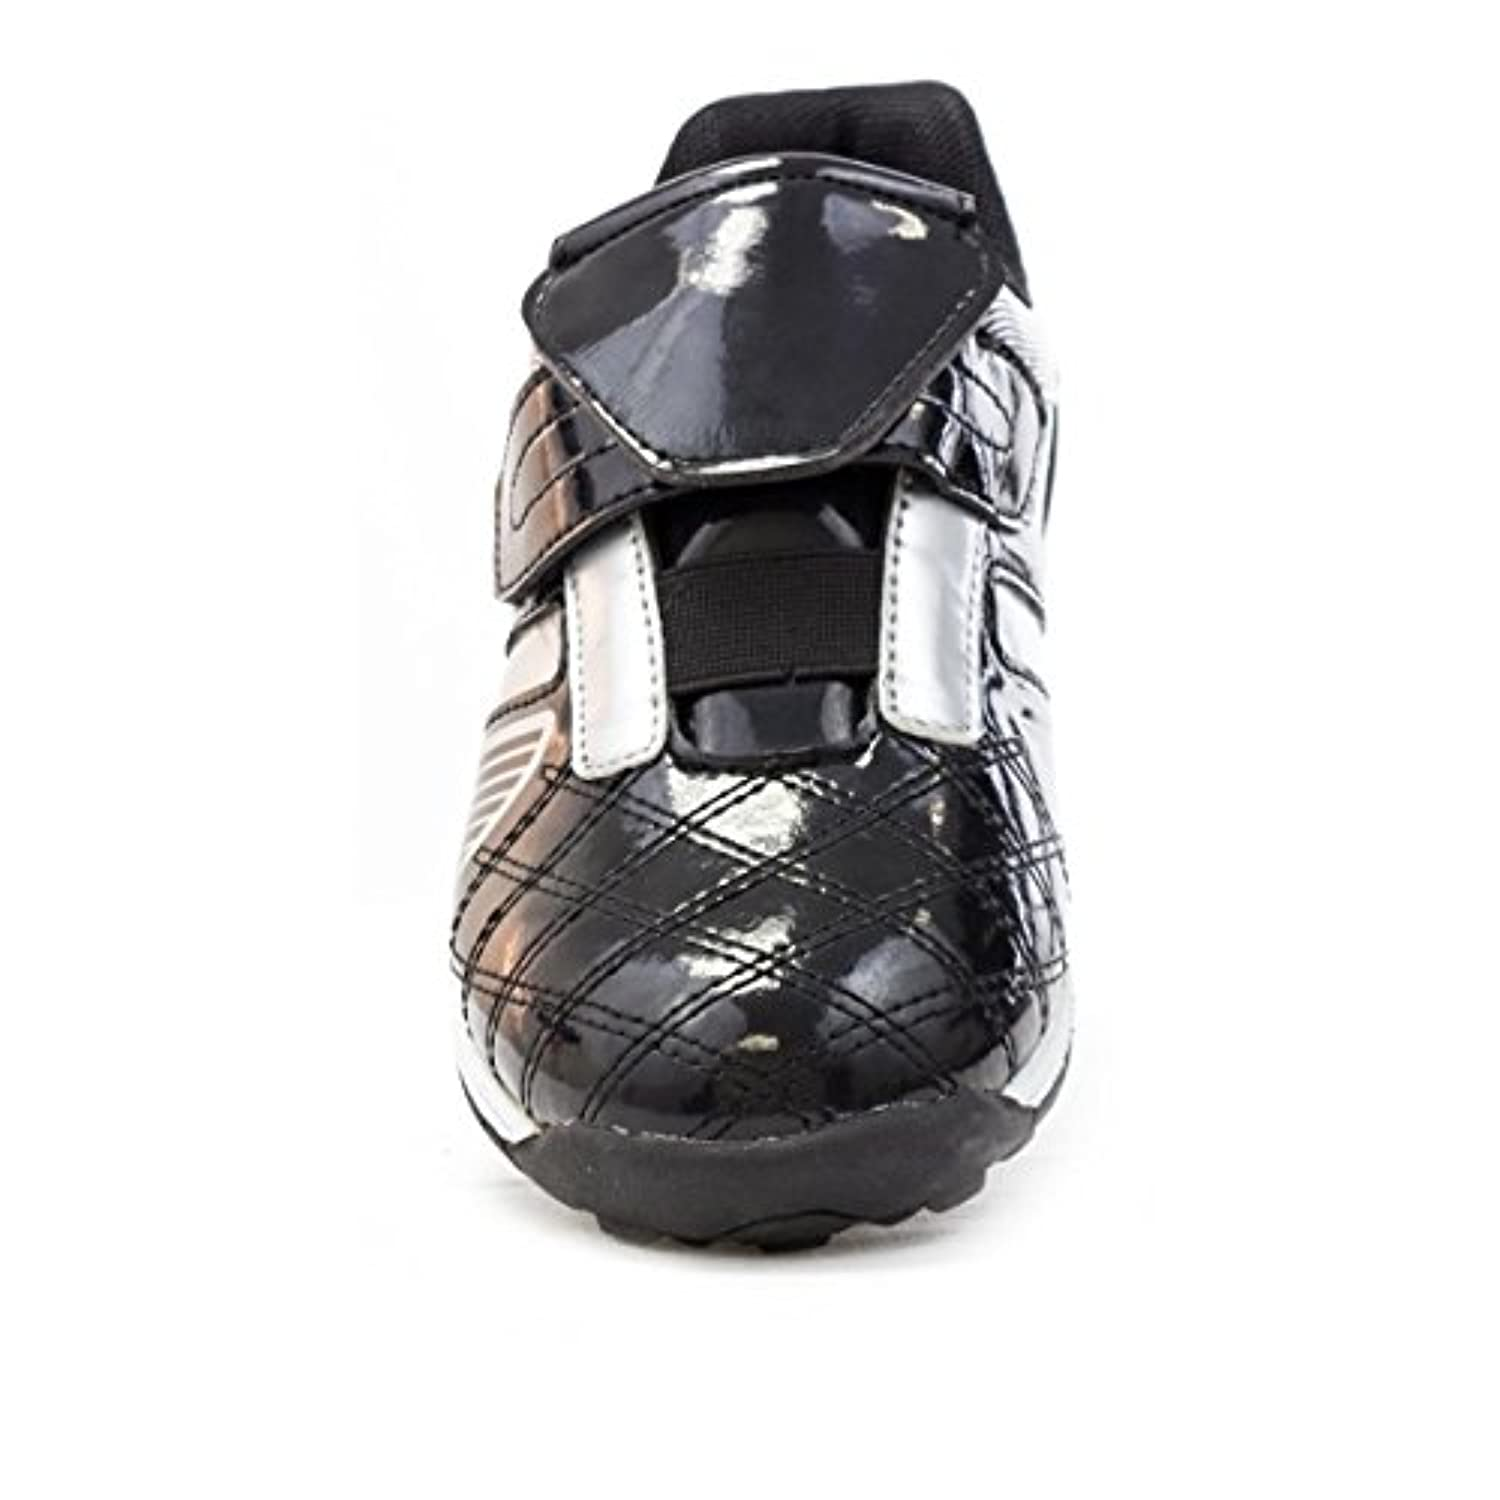 Tick - Boys Black & Silver Velcro Astroturf Trainer - Size 10 - Black